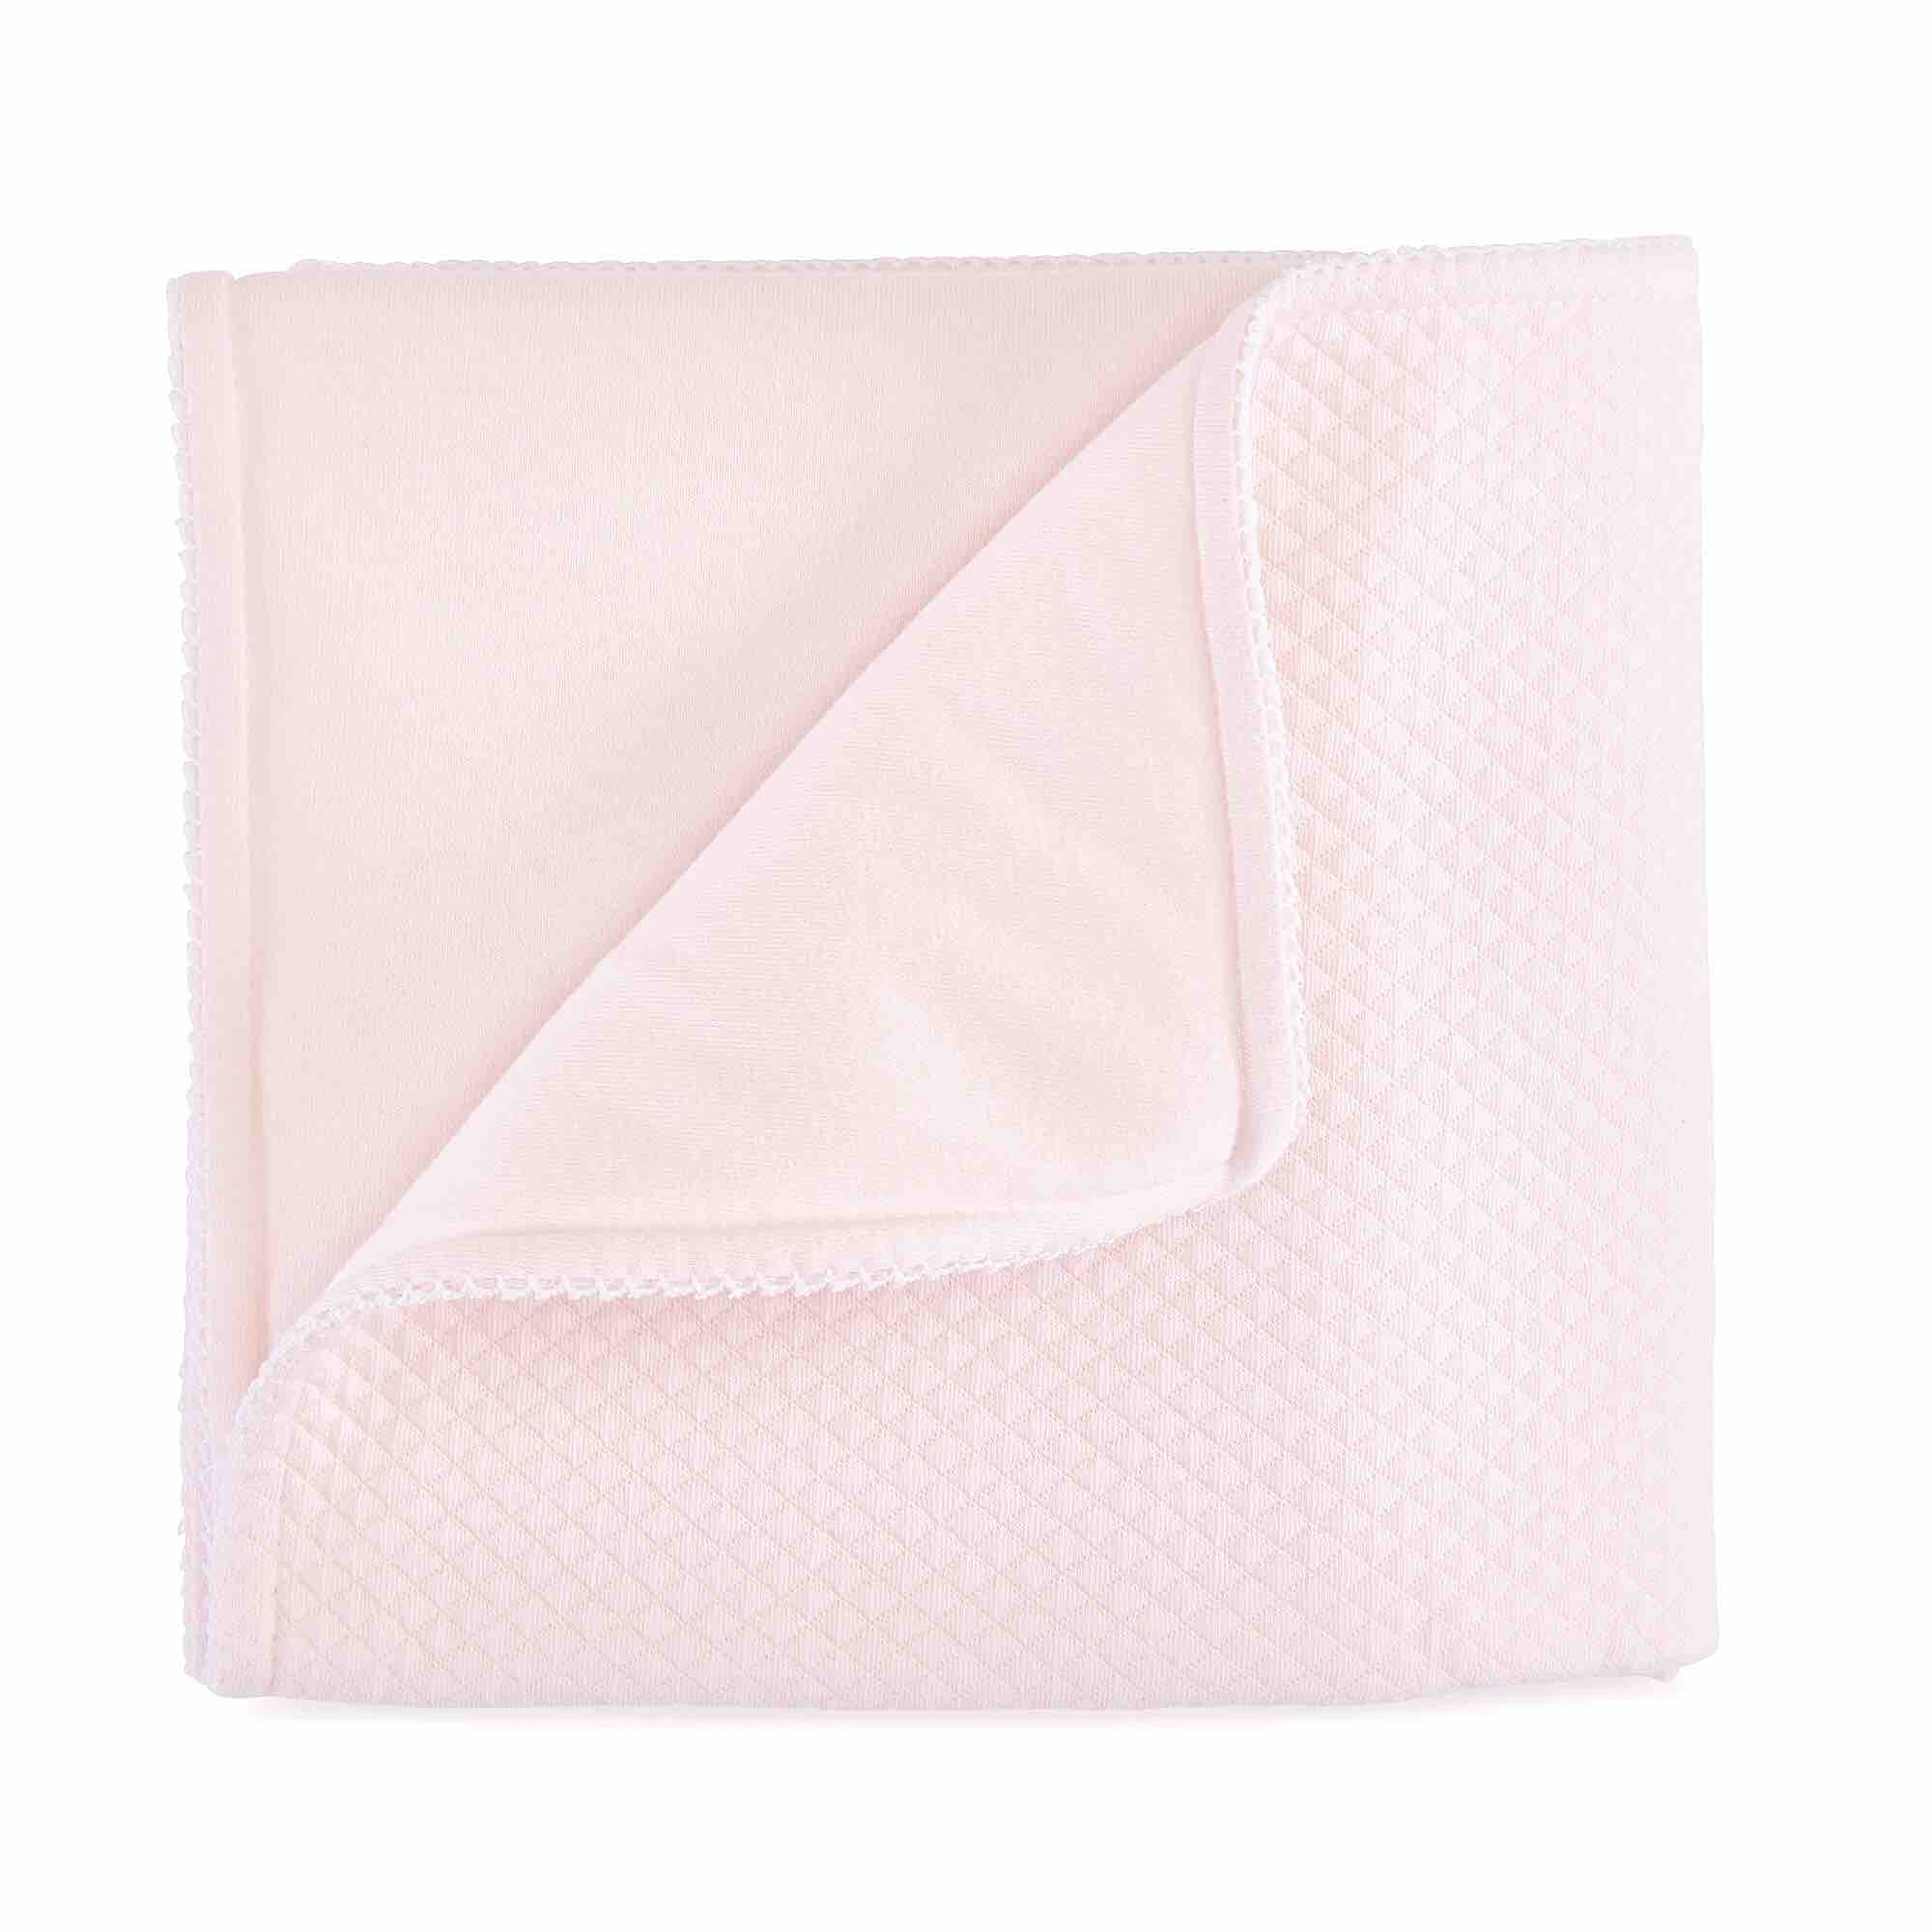 Theophile & Patachou Blanket - Royal Pink